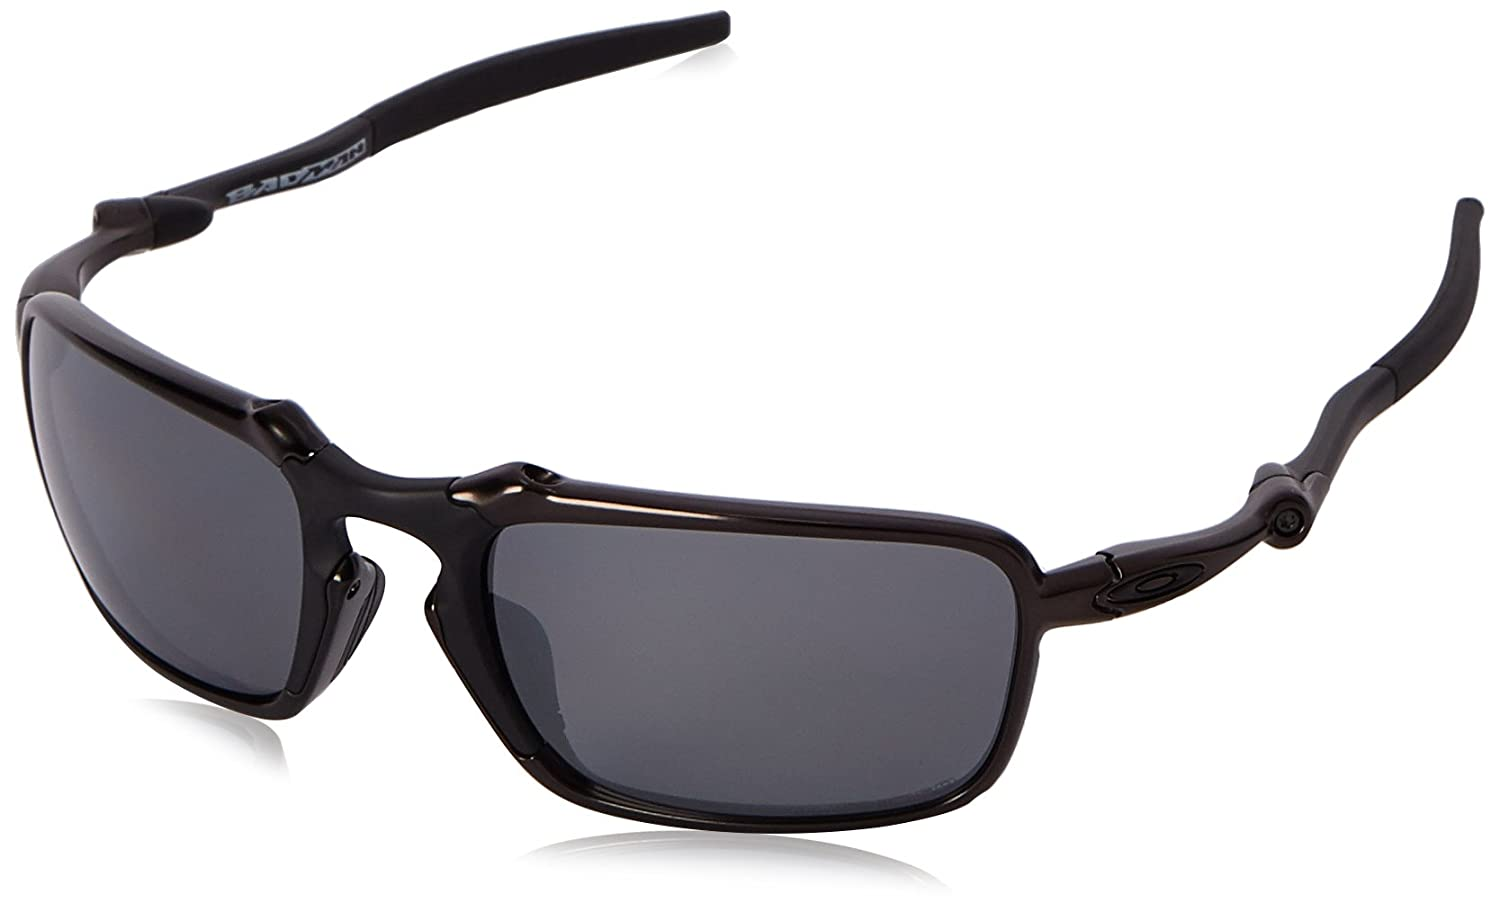 best deals on oakley sunglasses j4vv  Amazoncom: Oakley Men's Badman OO6020-01 Polarized Iridium Rectangular  Sunglasses, Dark Carbon, 60 mm: Clothing